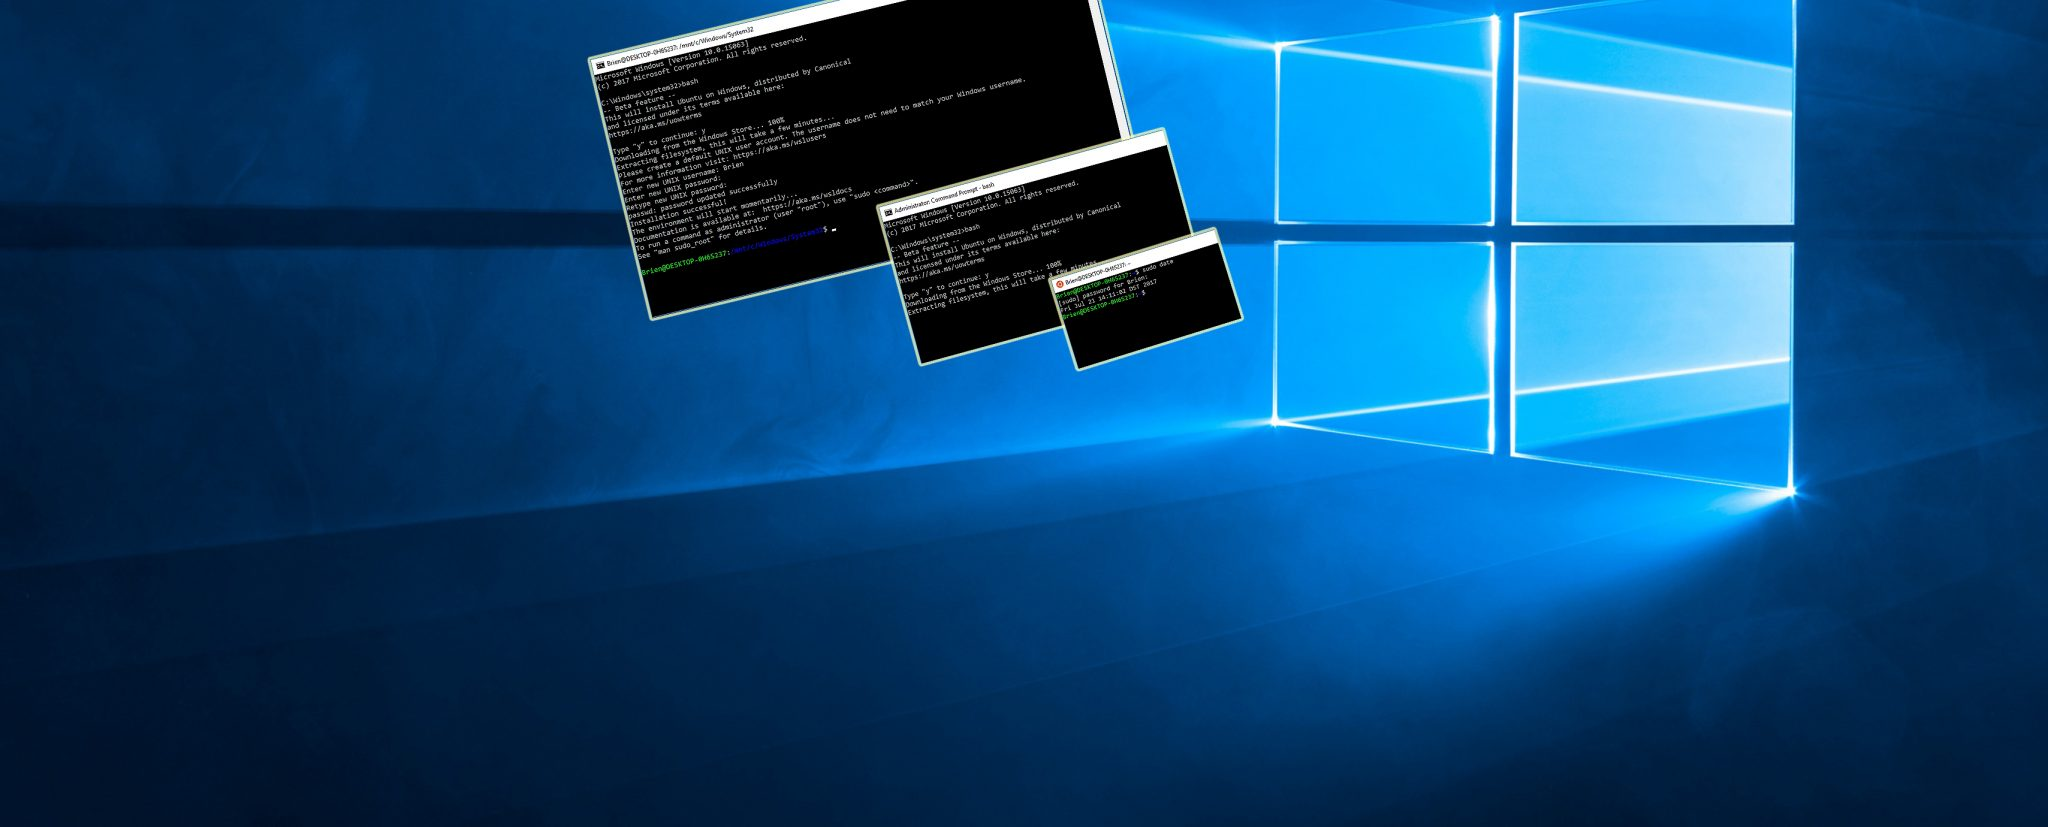 Bash on Windows 10